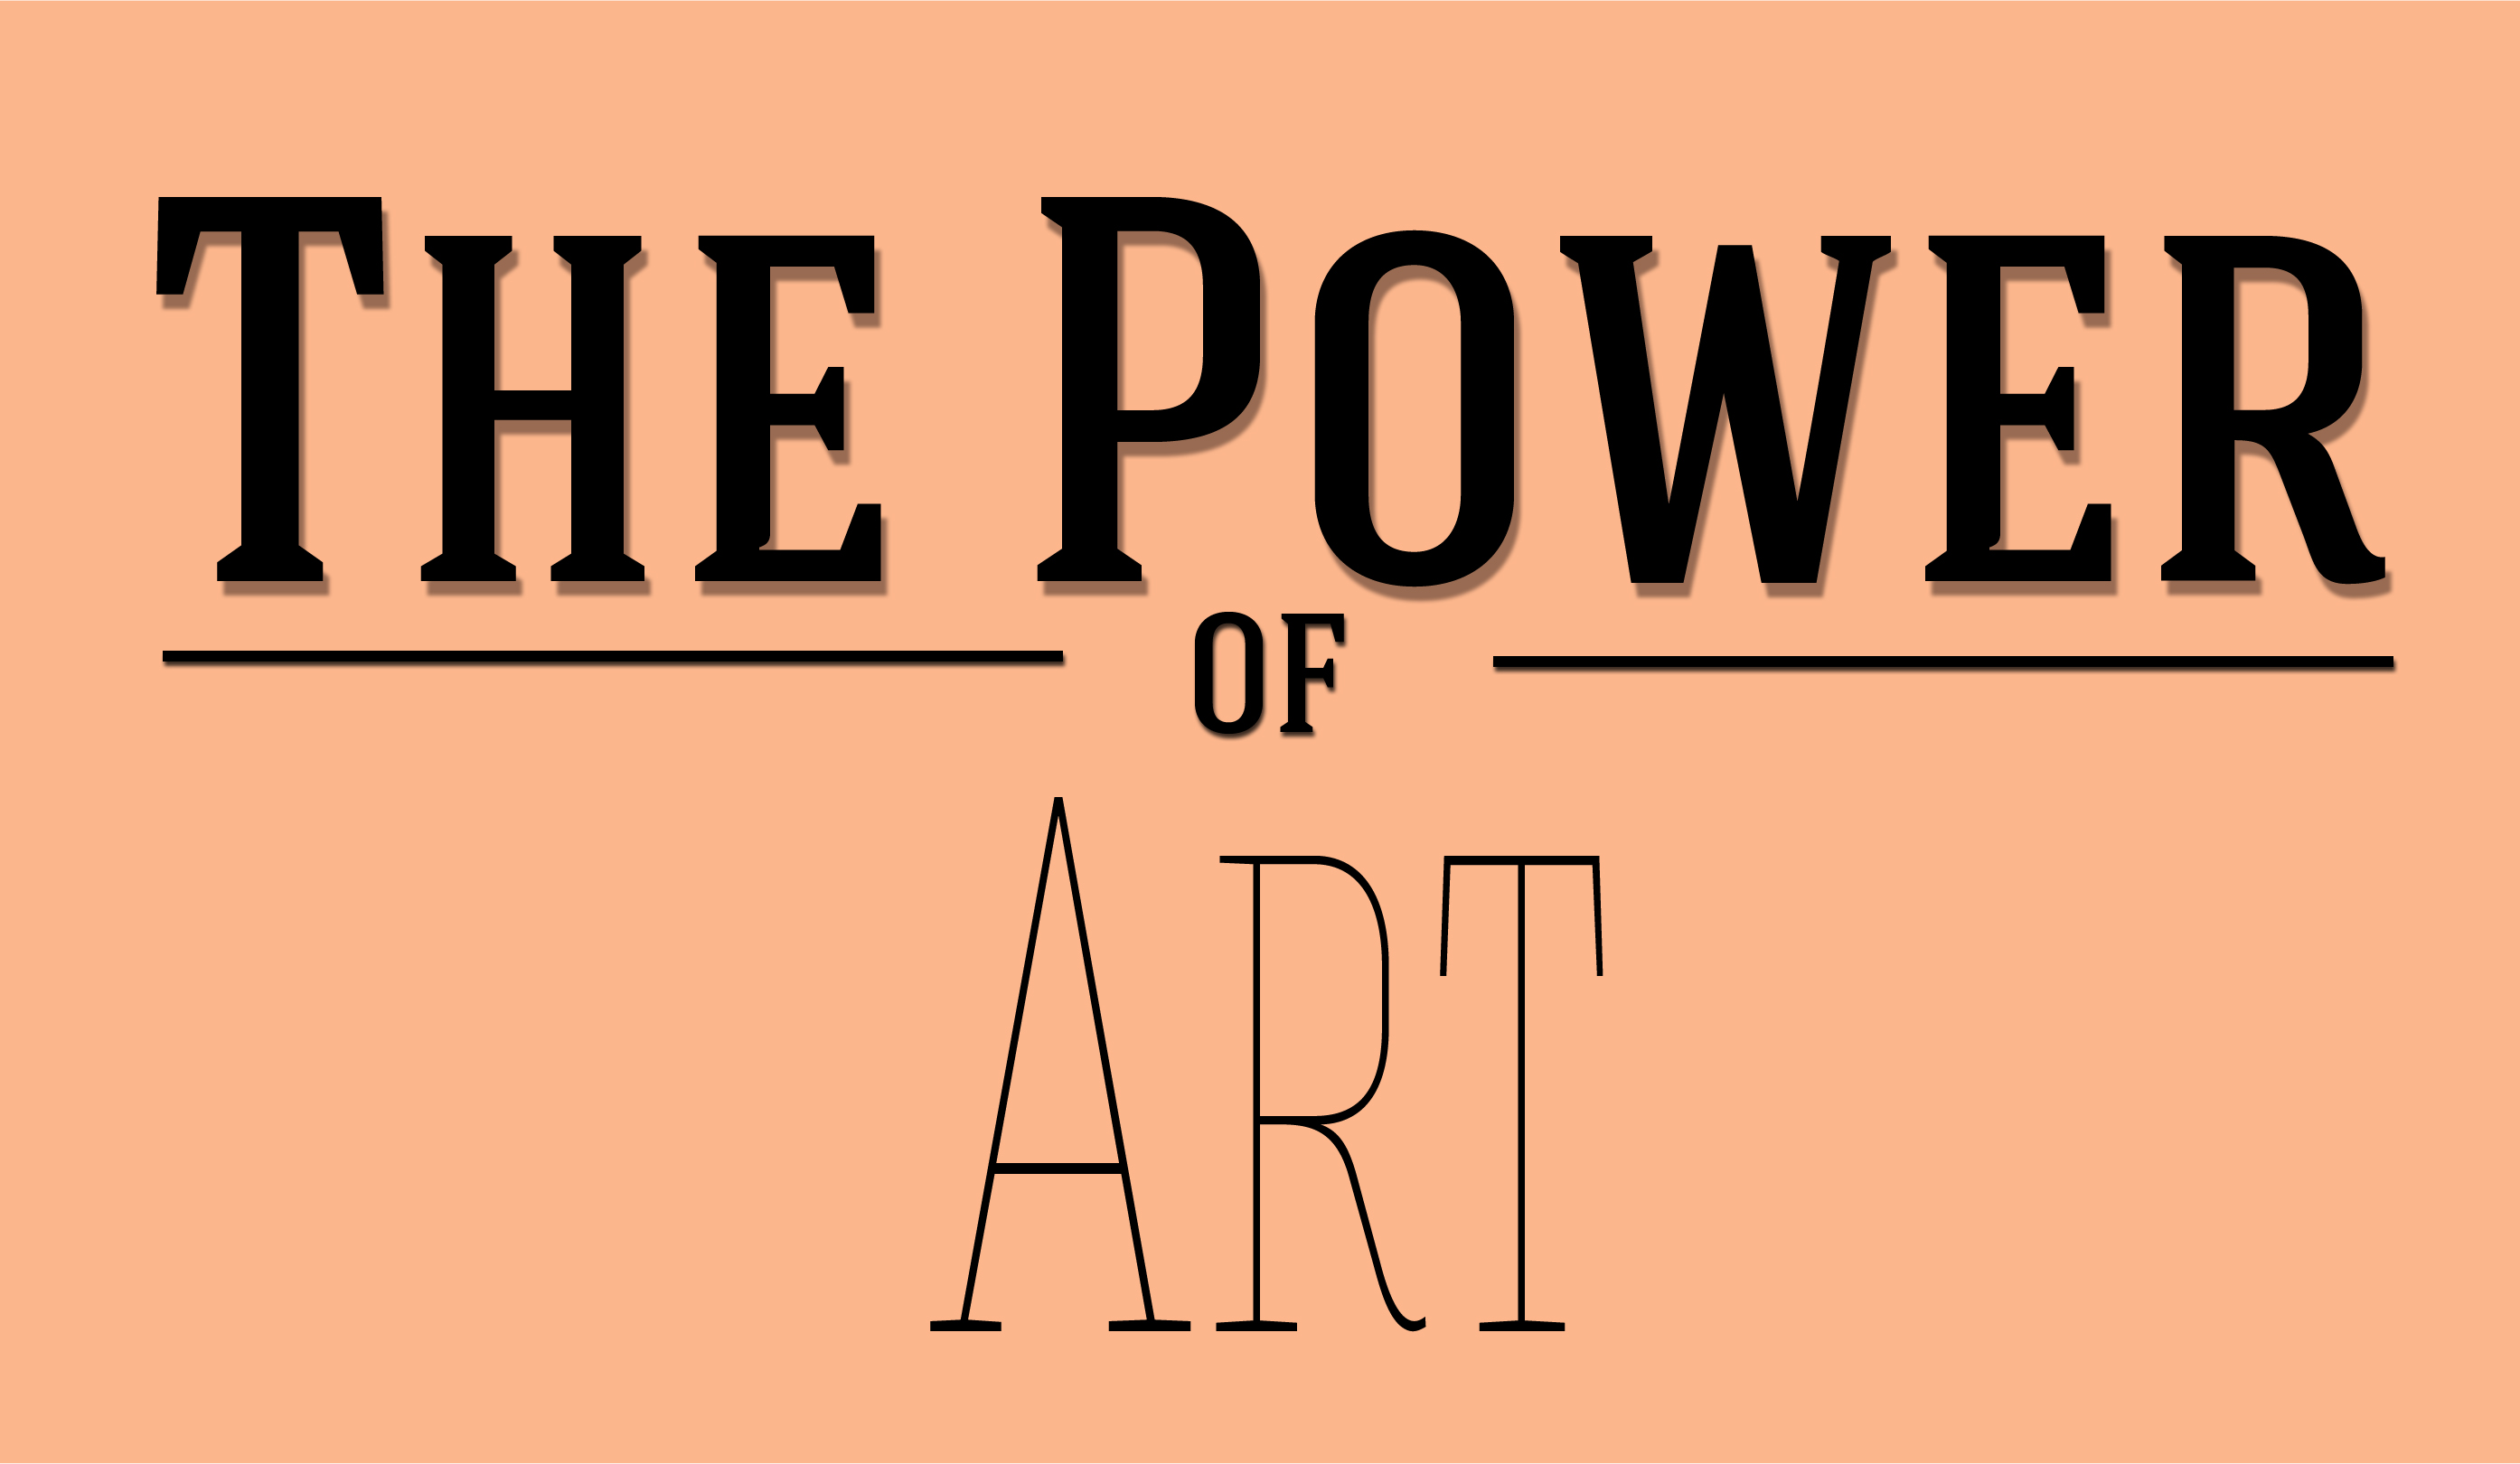 Power of art 42